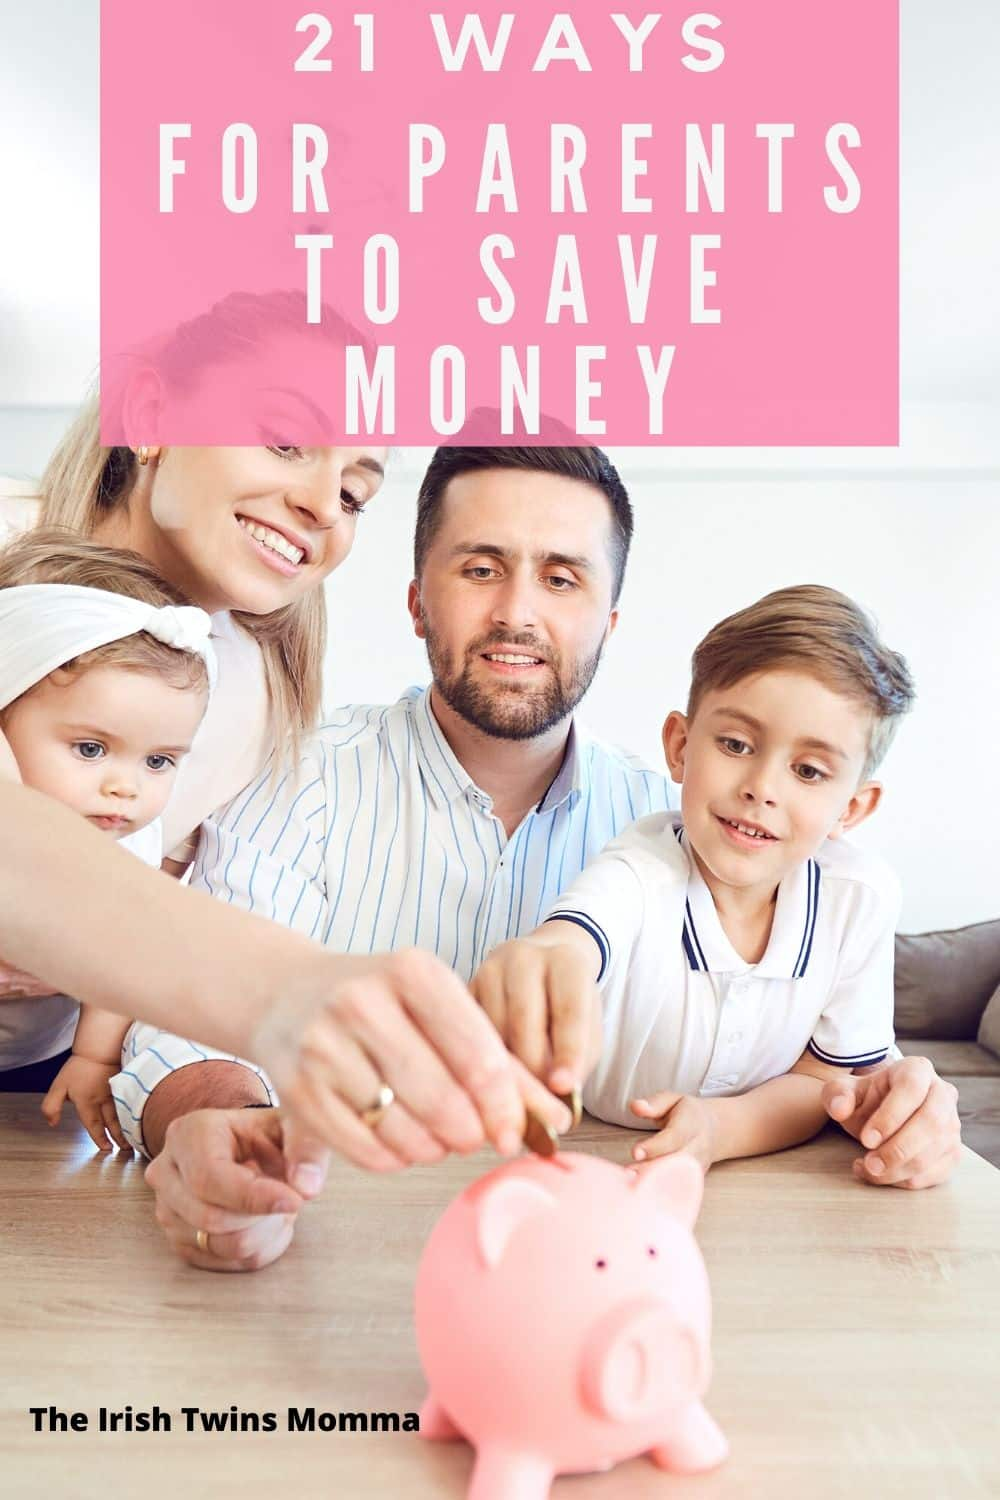 The cost of raising a child continue to rise. Here are some way for parents to cut costs when raising children that actually work. via @irishtwinsmom11